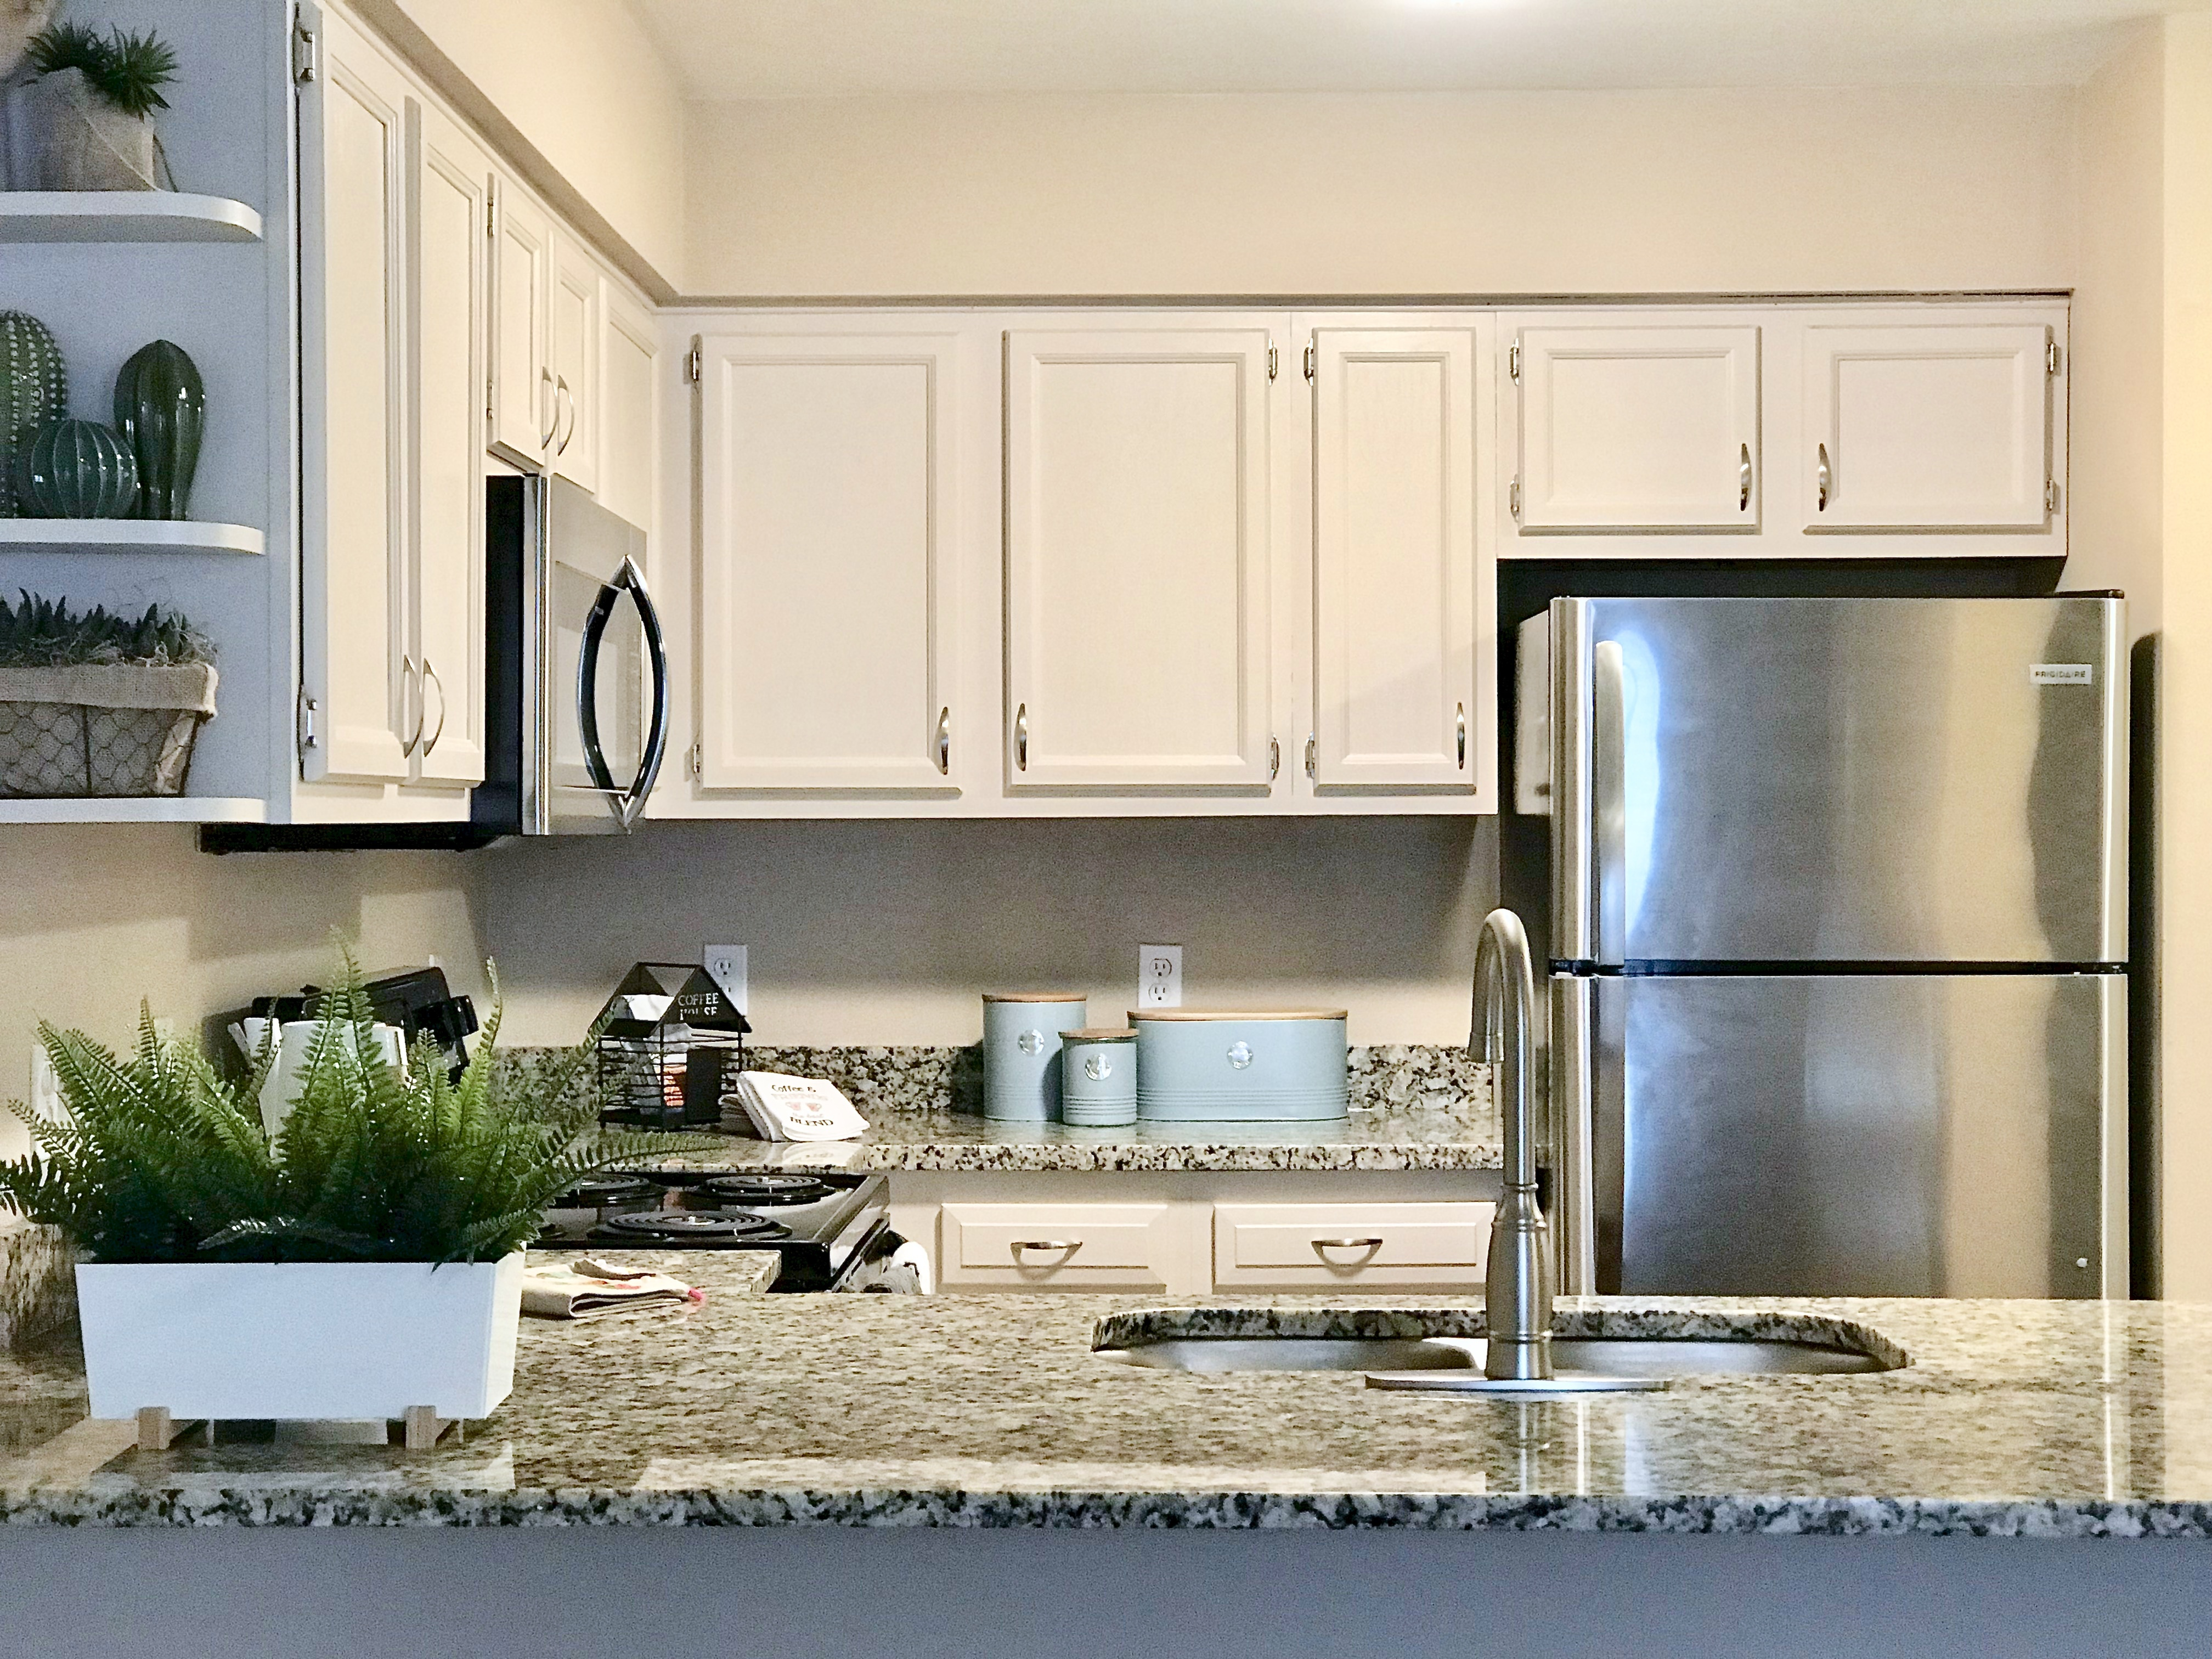 Image of Stainless Steel Appliances for SQ Johnson City